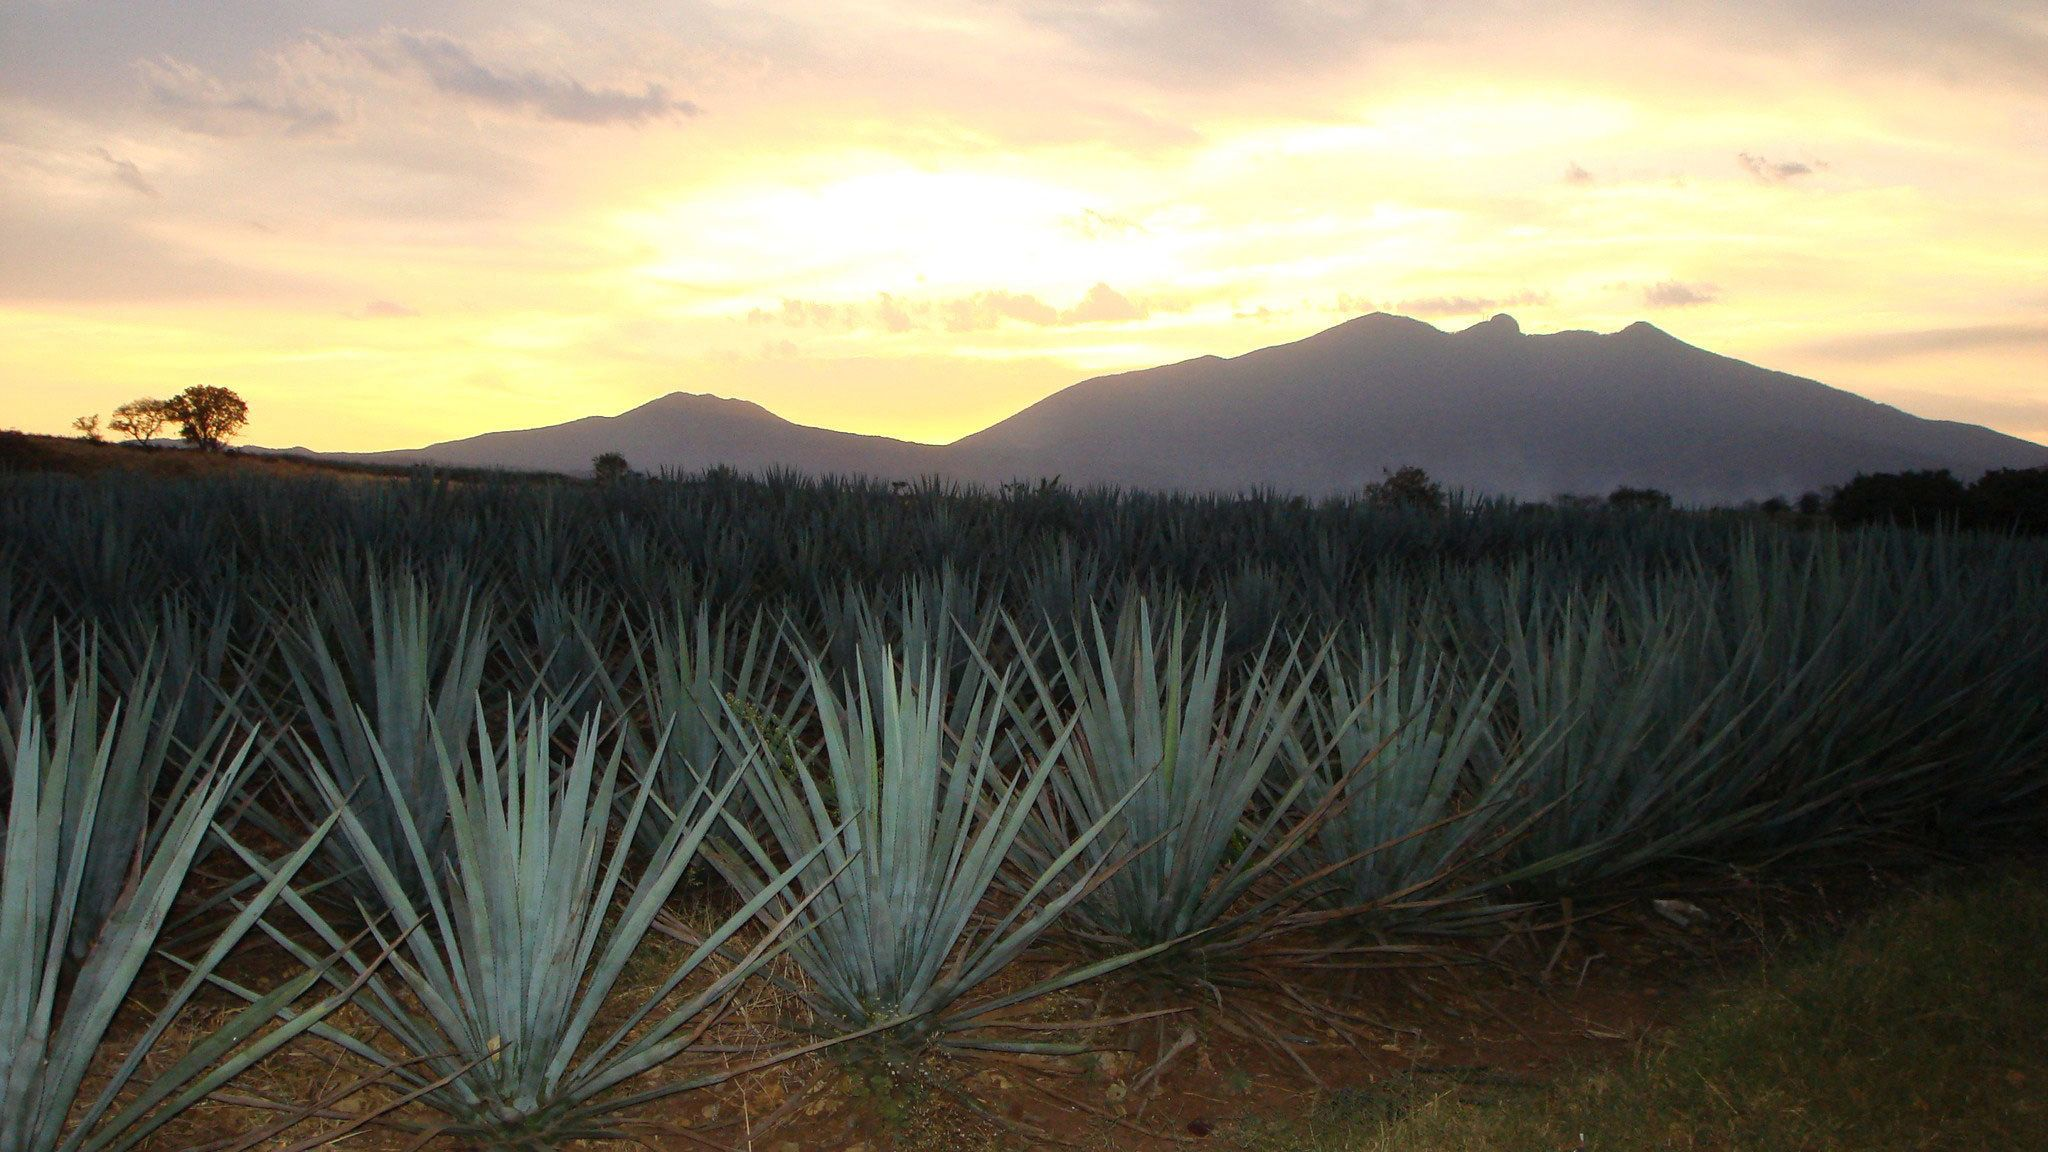 Sunset over an agave field